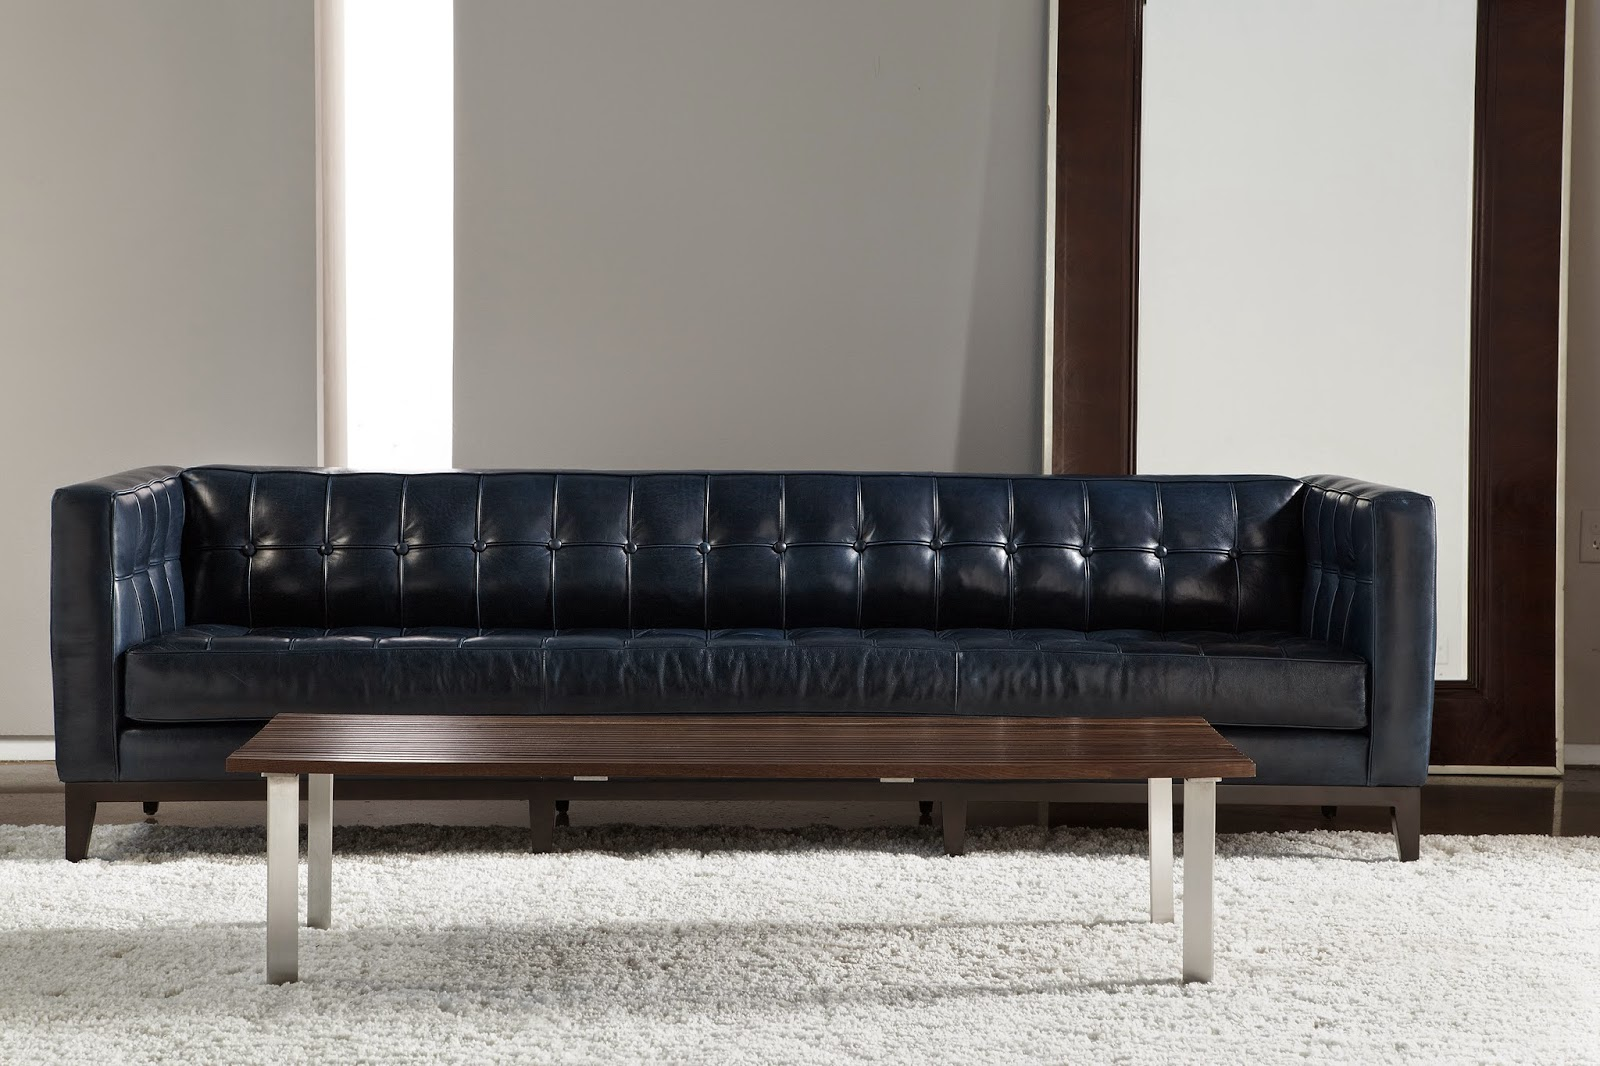 American Leather Luxe Sofa In Flagstaff Marina Leather.